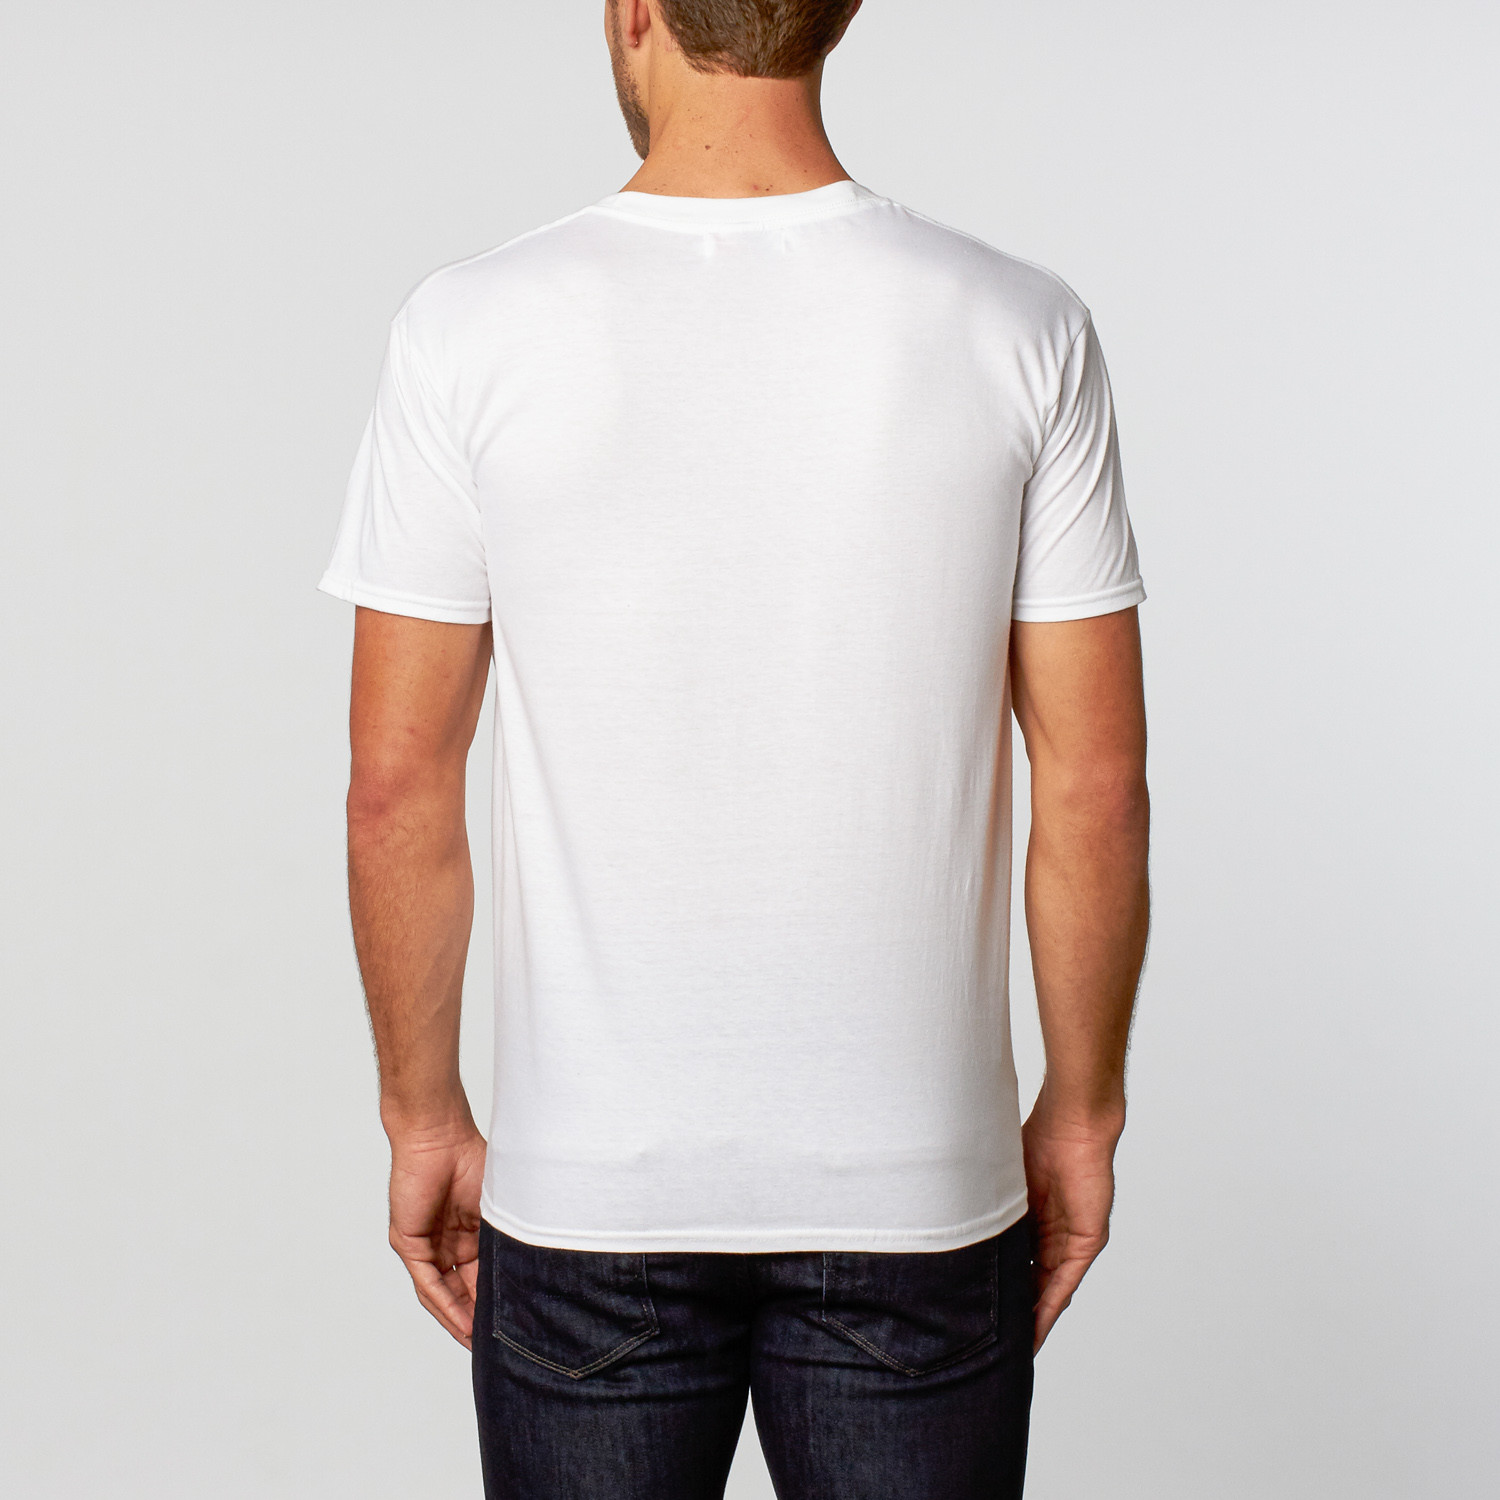 Crew neck t shirt white s rgb touch of modern for Crew neck white t shirt